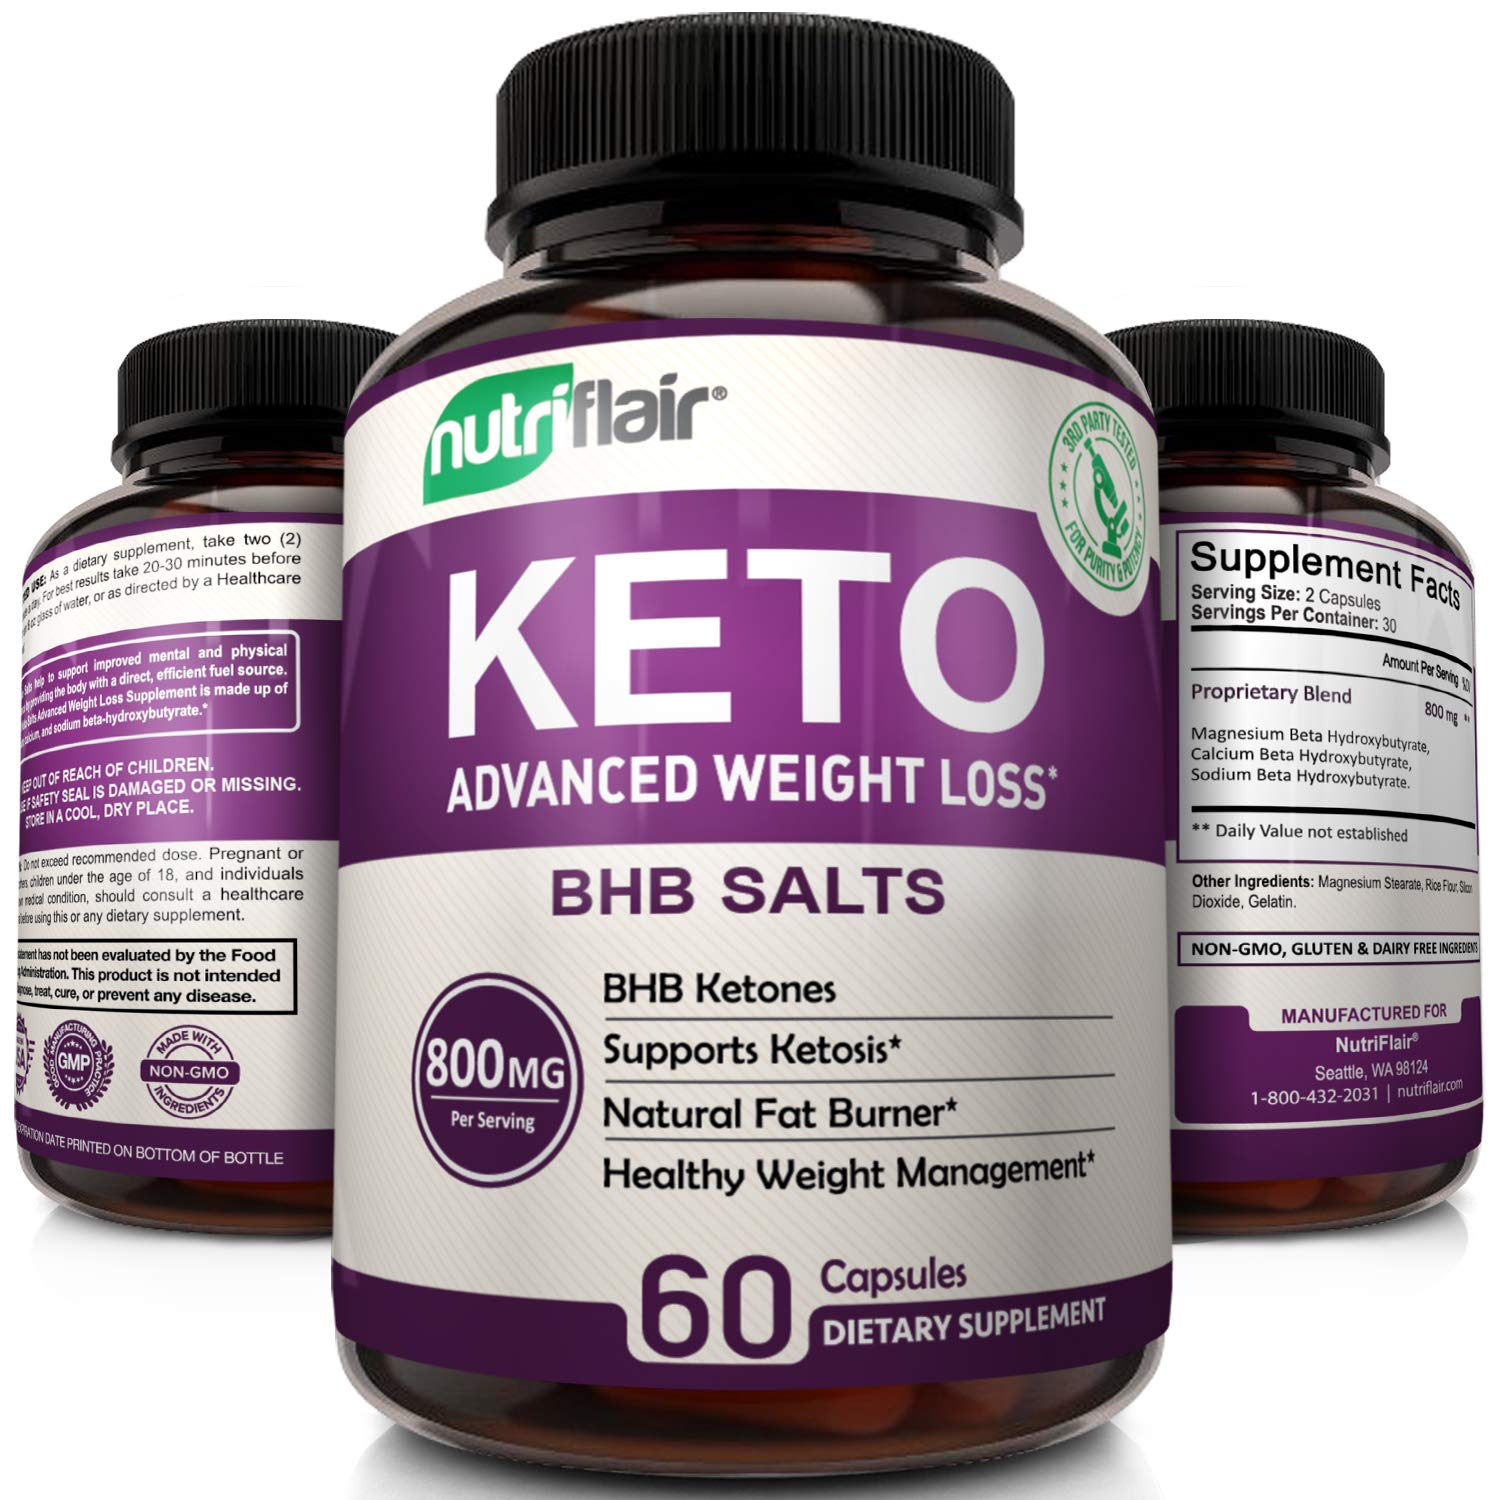 Keto Diet Pills - 800mg Advanced Weight Loss Ketosis Supplement - All-Natural BHB Salts Ketogenic...